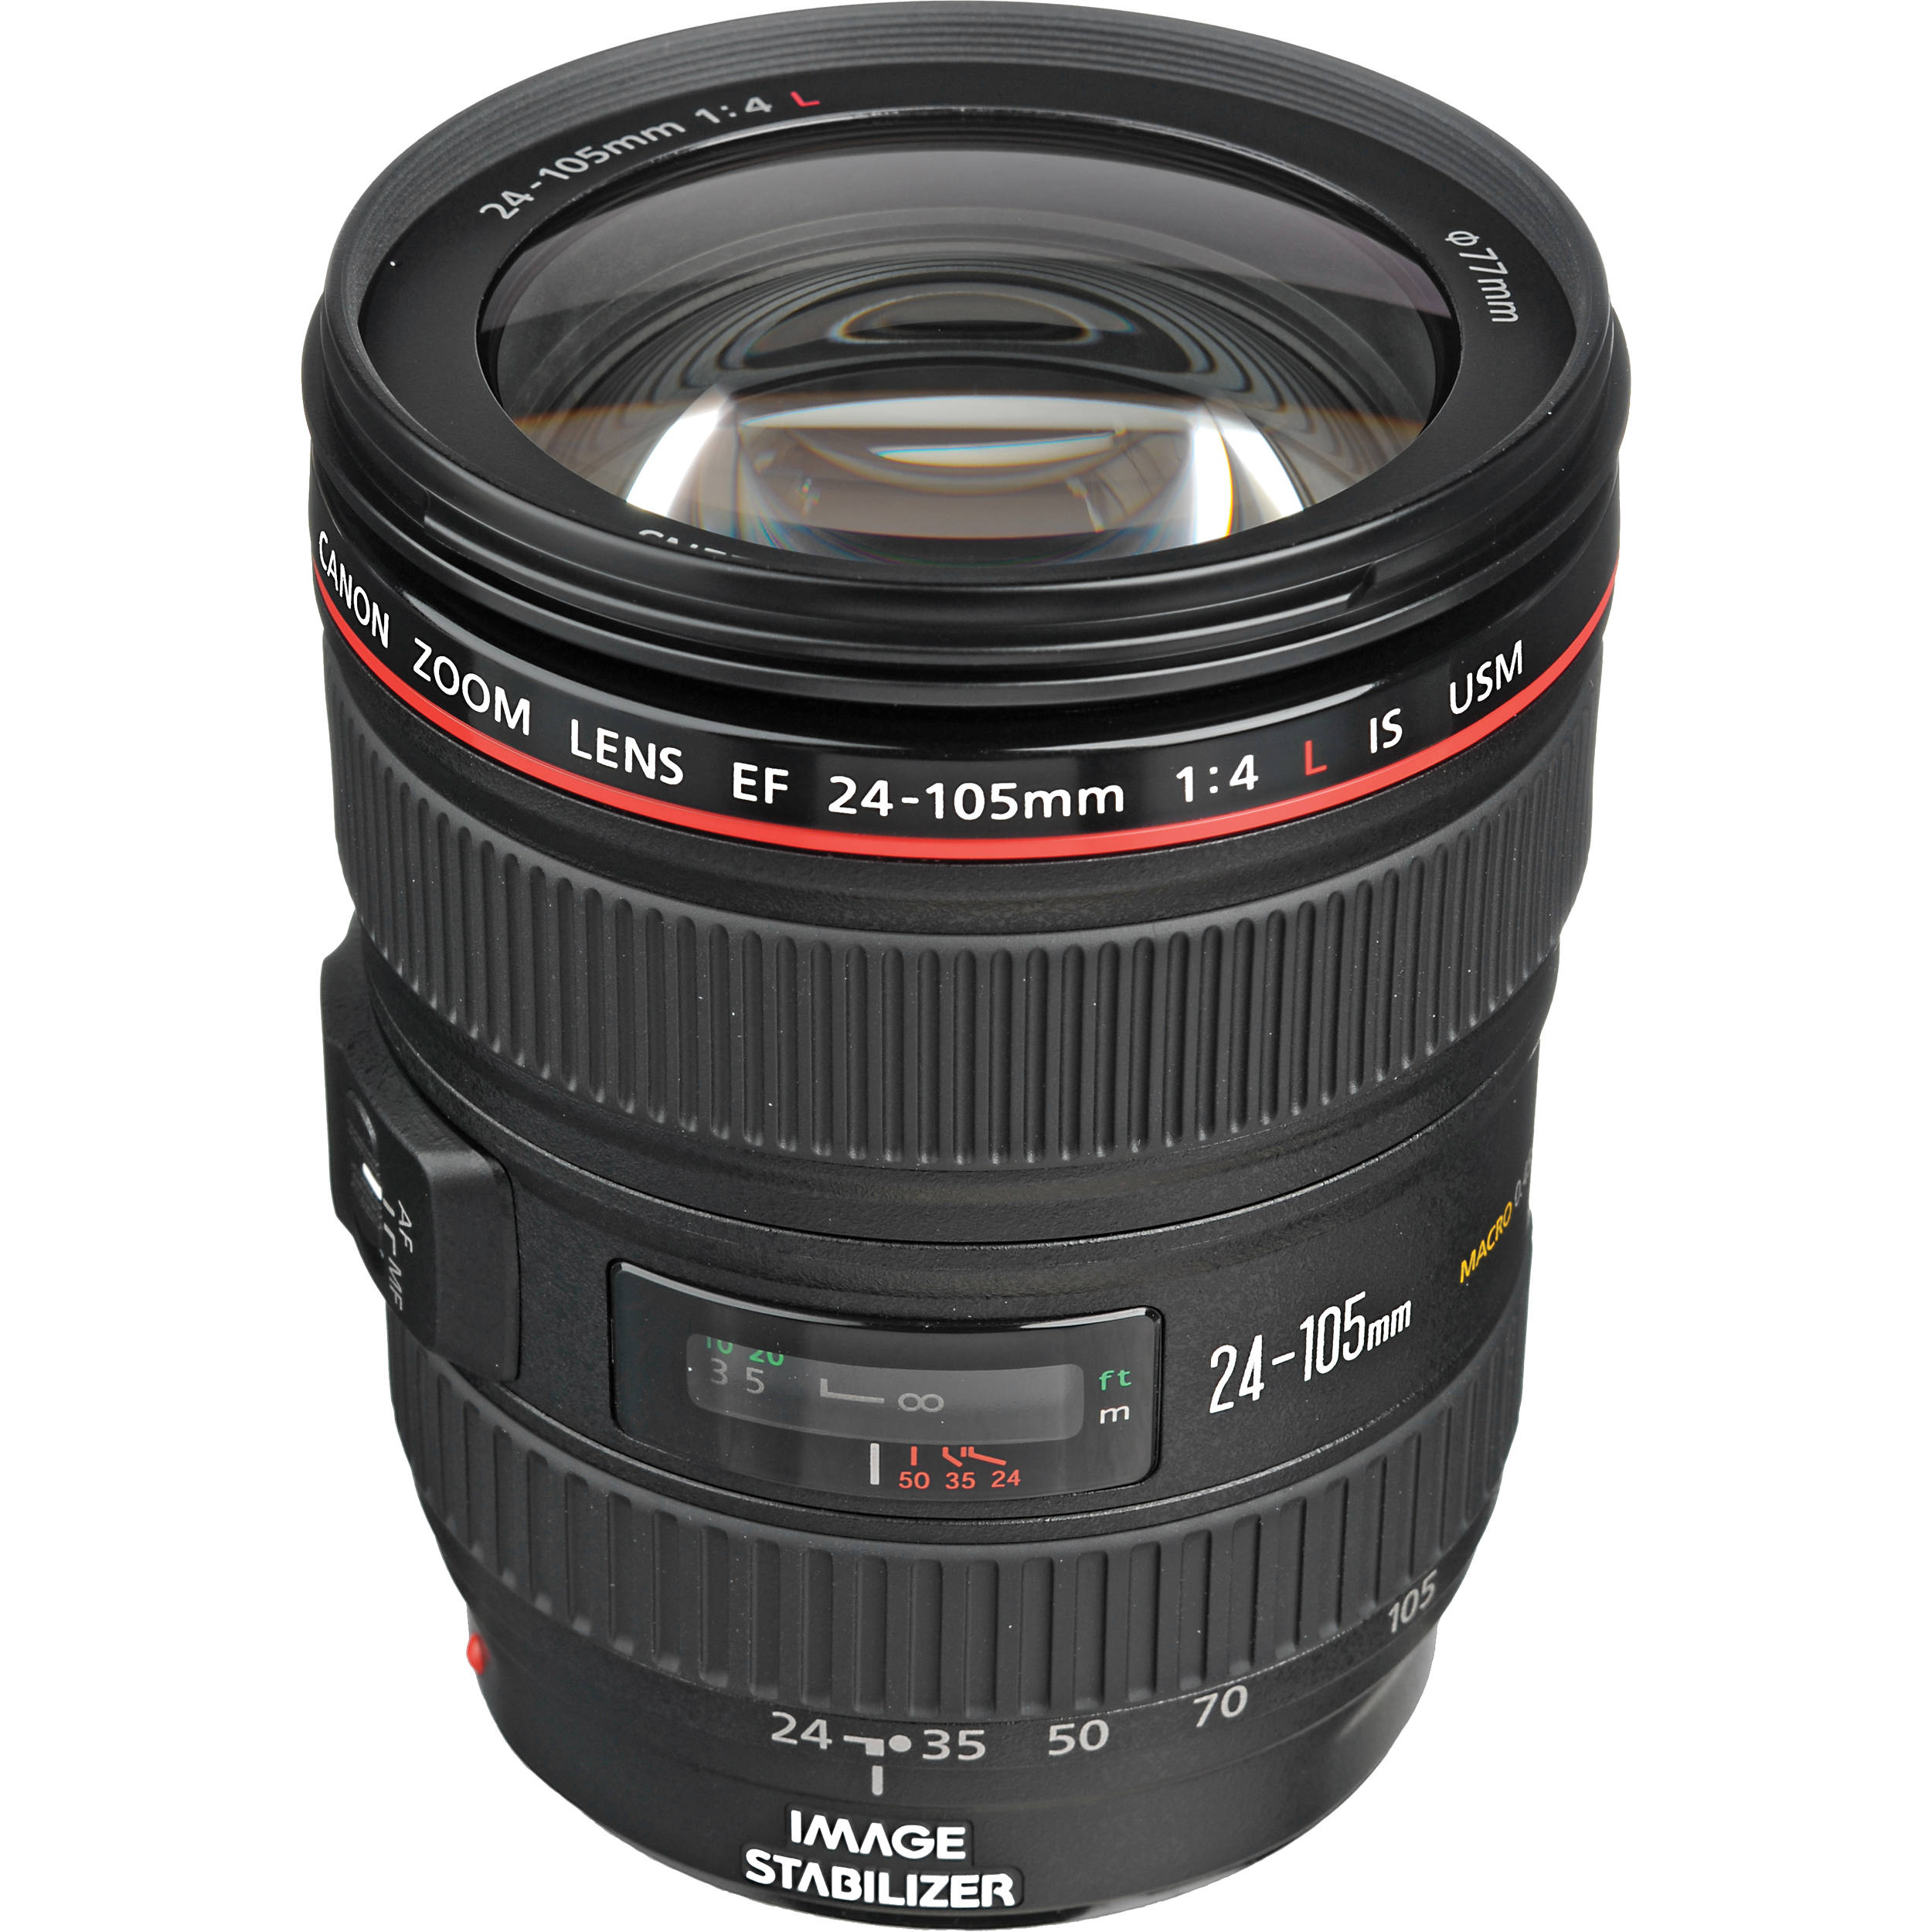 e4f73ea2eb Canon EF 24-105mm f/4L IS USM Lens 0344B002 B&H Photo Video